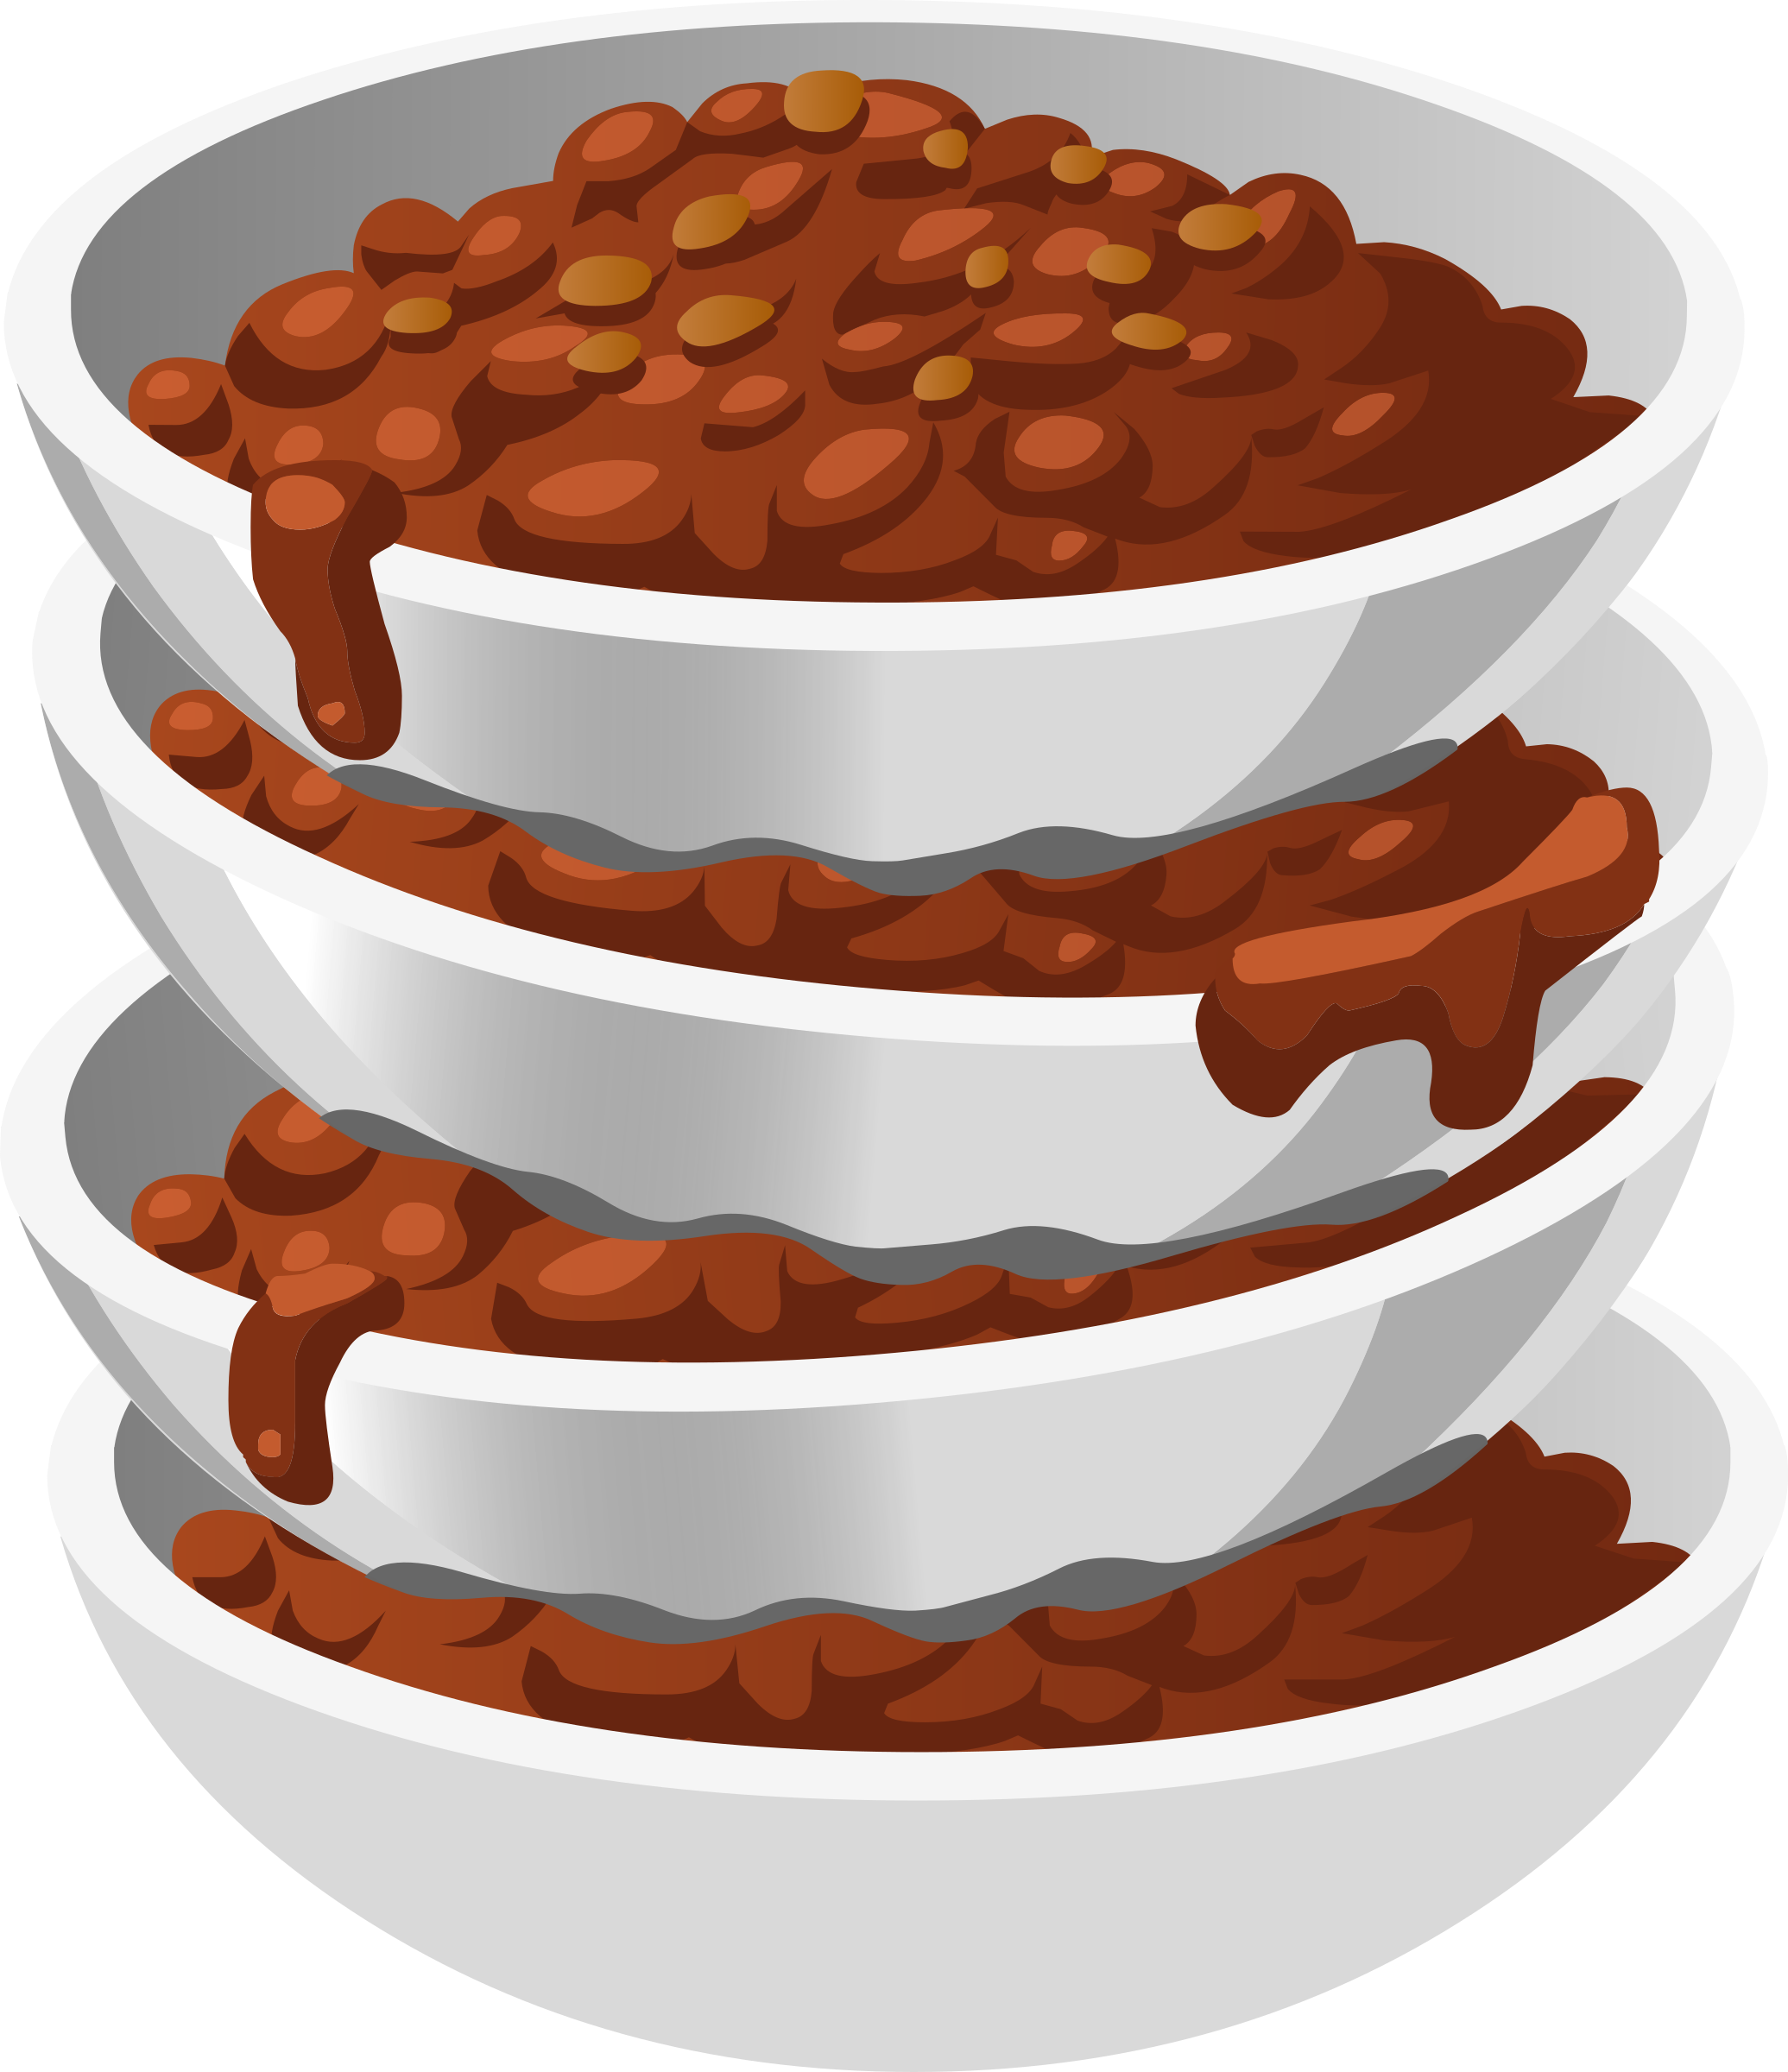 Food Chillybusting Chili by glitch